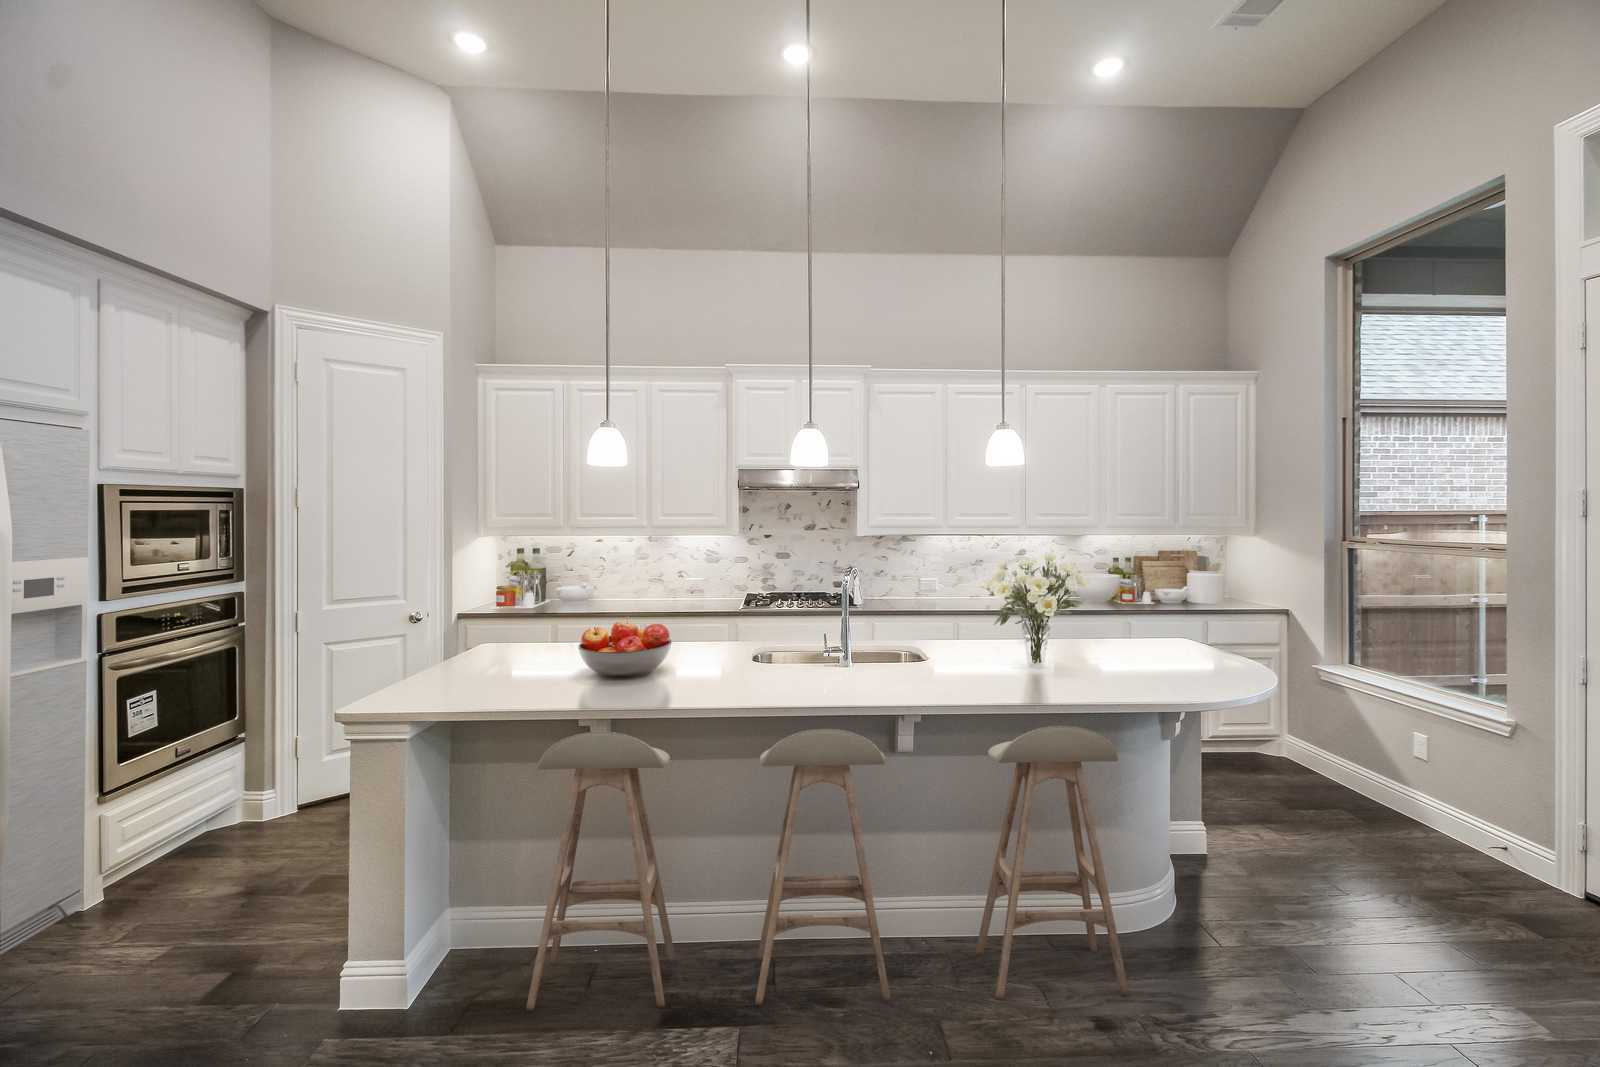 Kitchen featured in the Plan 211 By Highland Homes in Fort Worth, TX